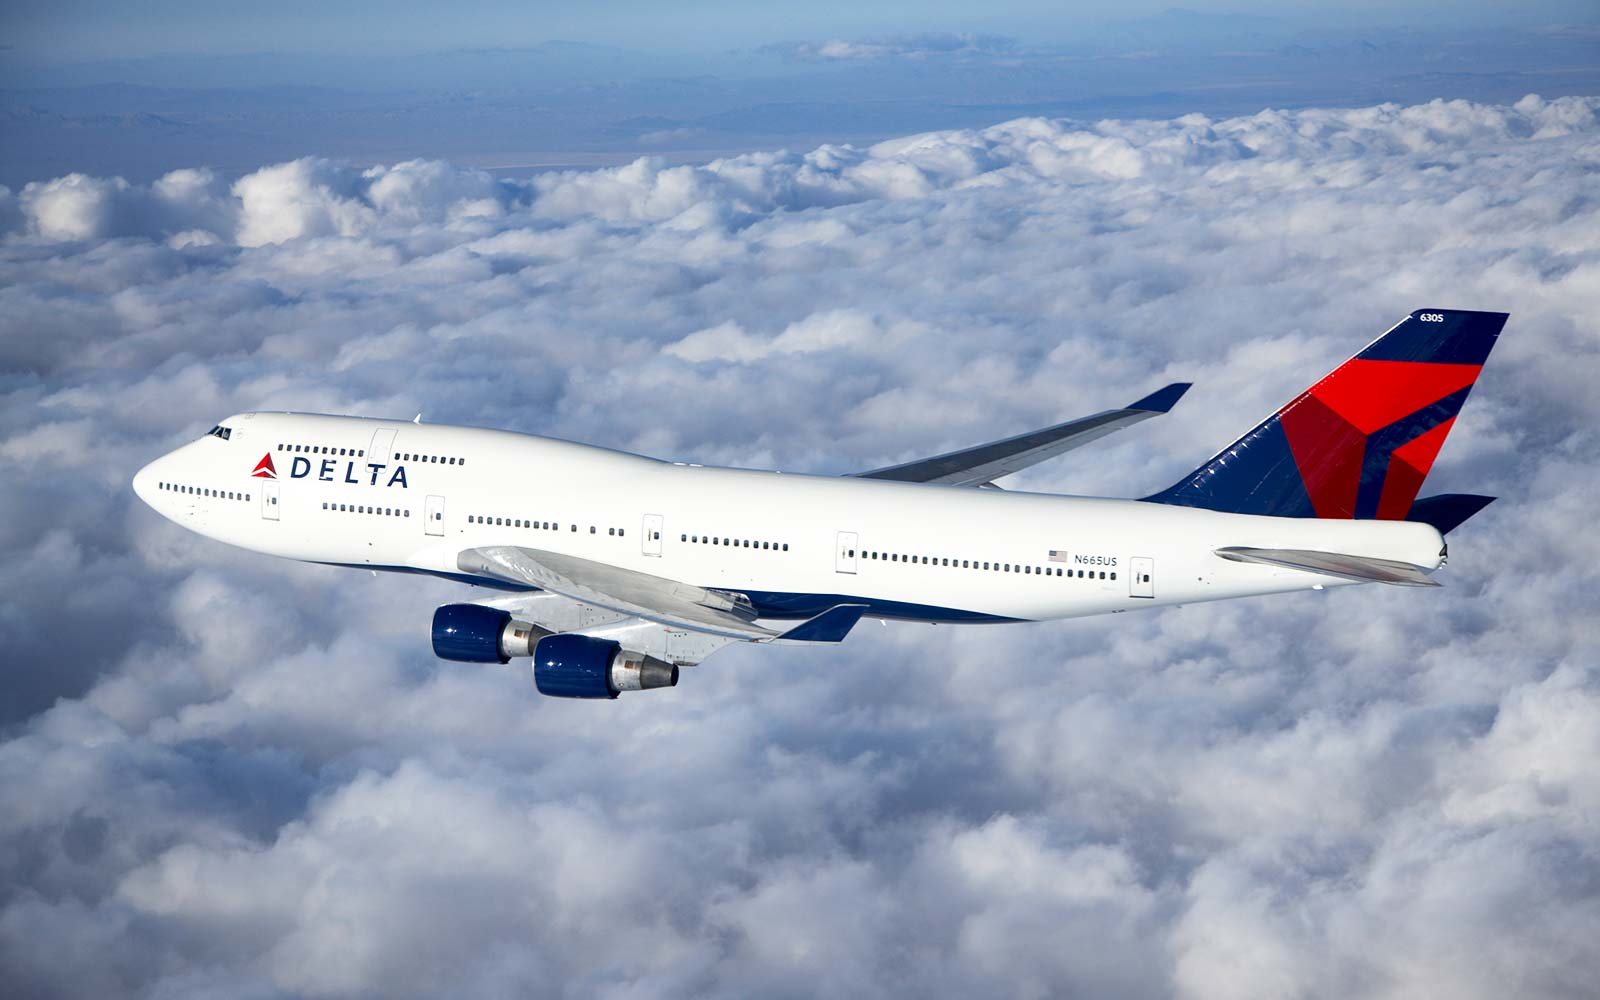 Delta Boeing 747 - 400 airplane flight